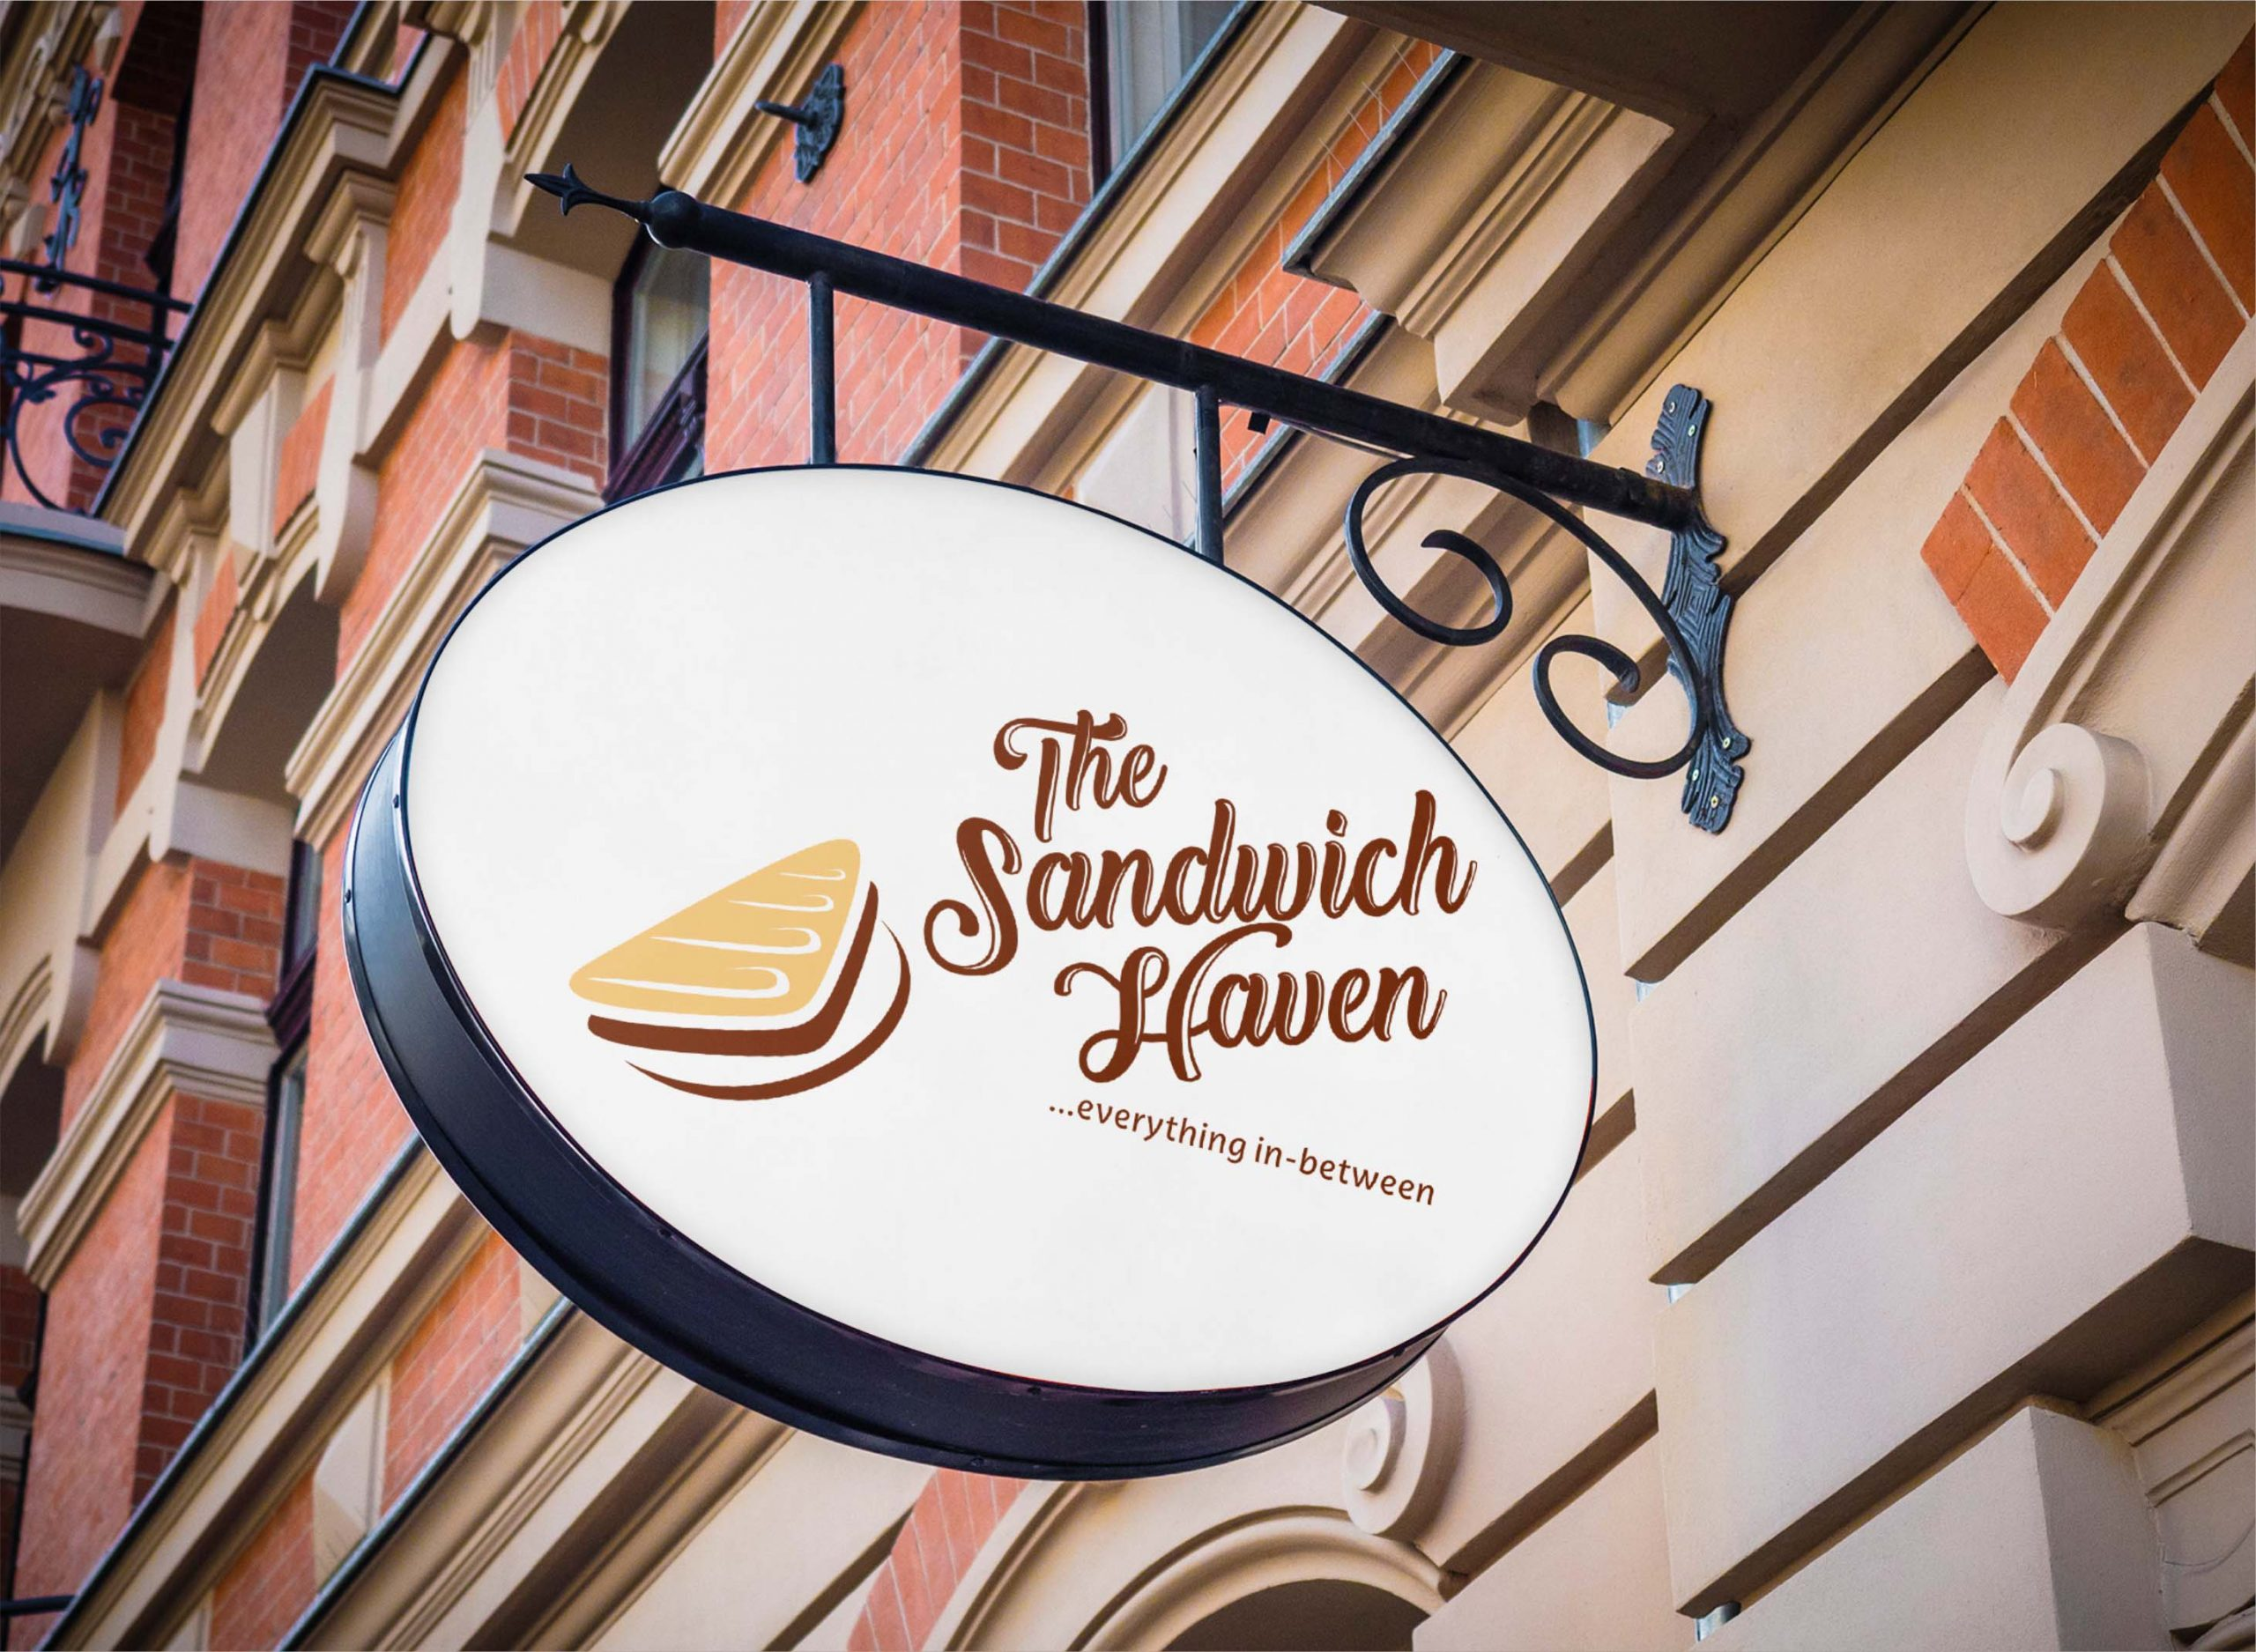 The Sandwich Haven